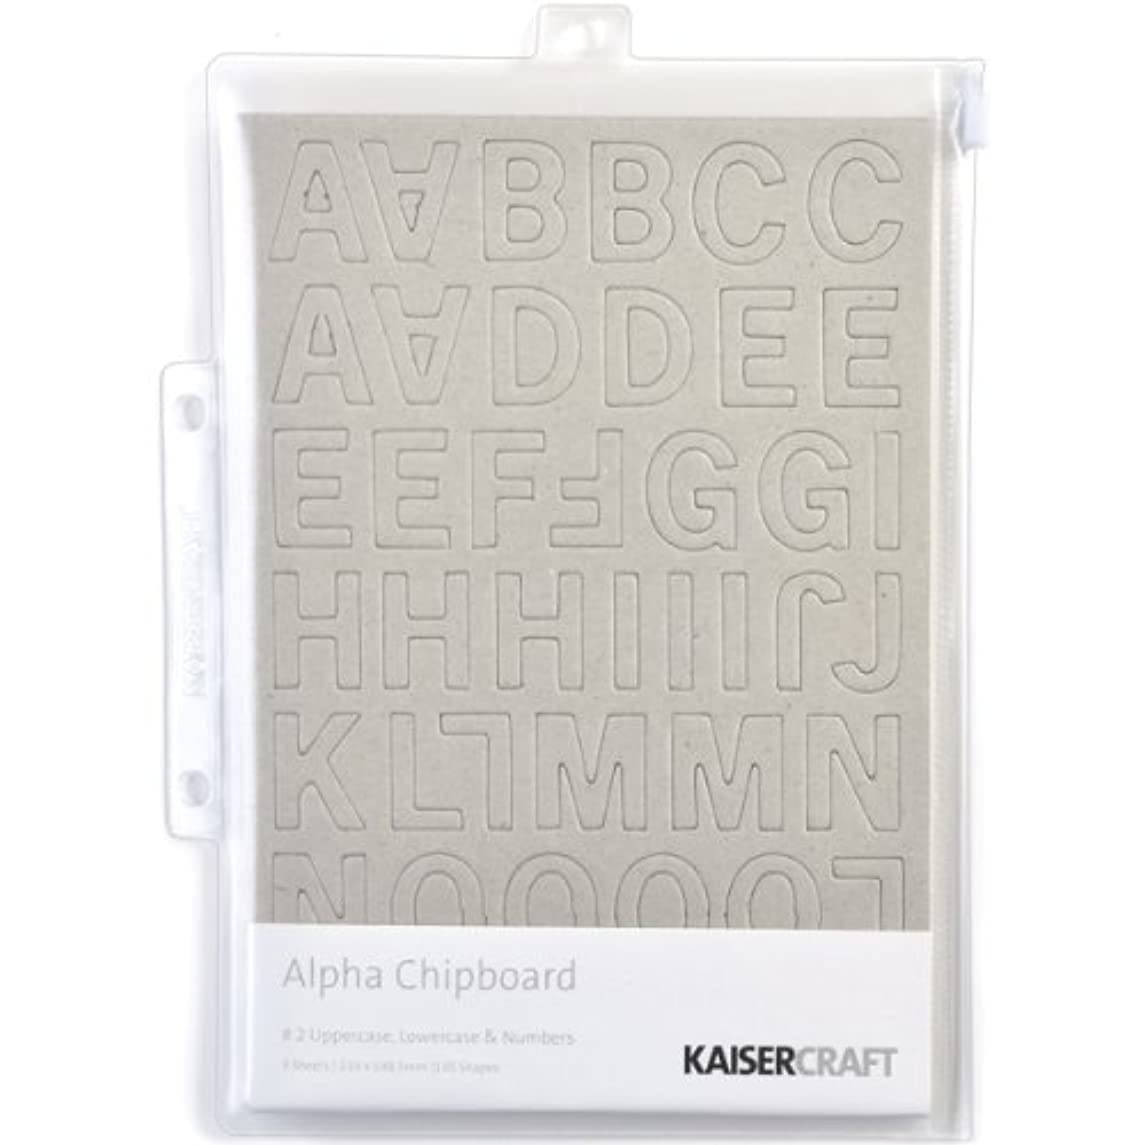 Kaisercraft Alpha No.2 Chipboard, 3 Sheets Per Package, Uppercase Lowercase and Numbers